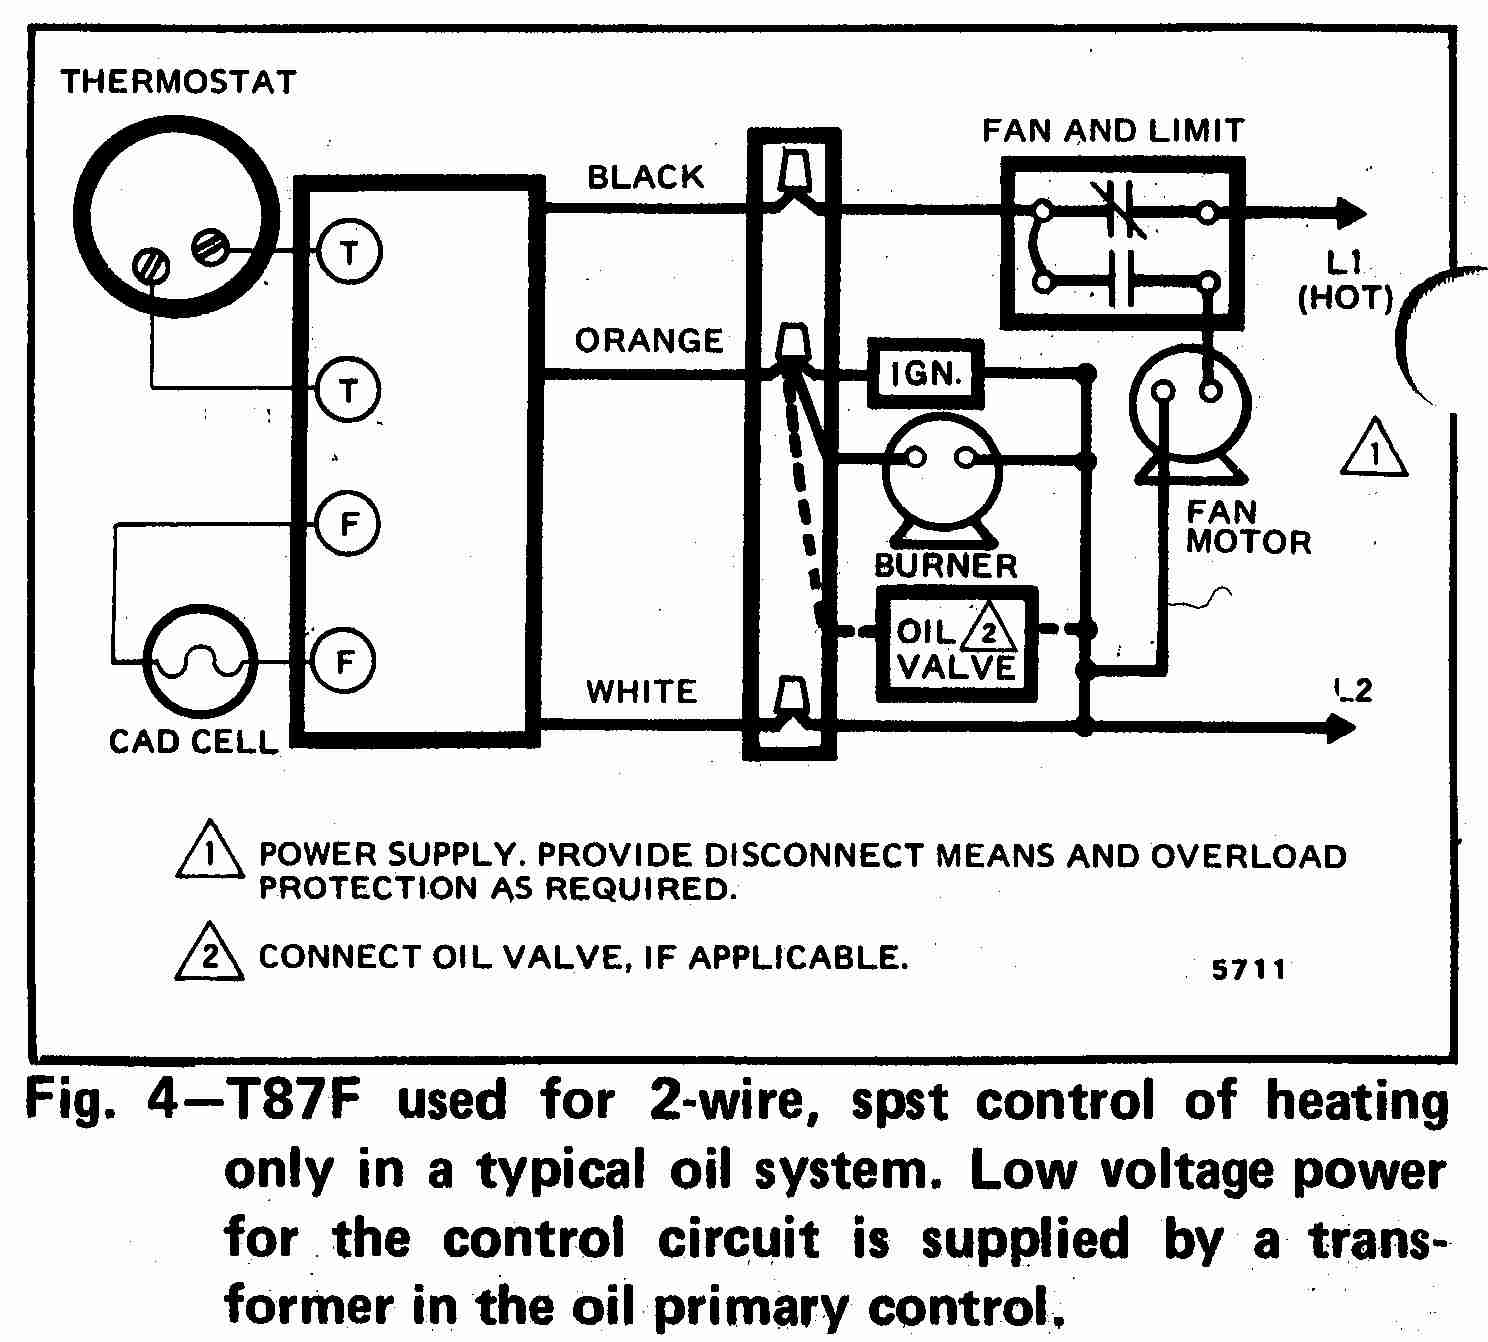 TT_T87F_0002_2W_DJF room thermostat wiring diagrams for hvac systems wiring diagram honeywell thermostat at soozxer.org